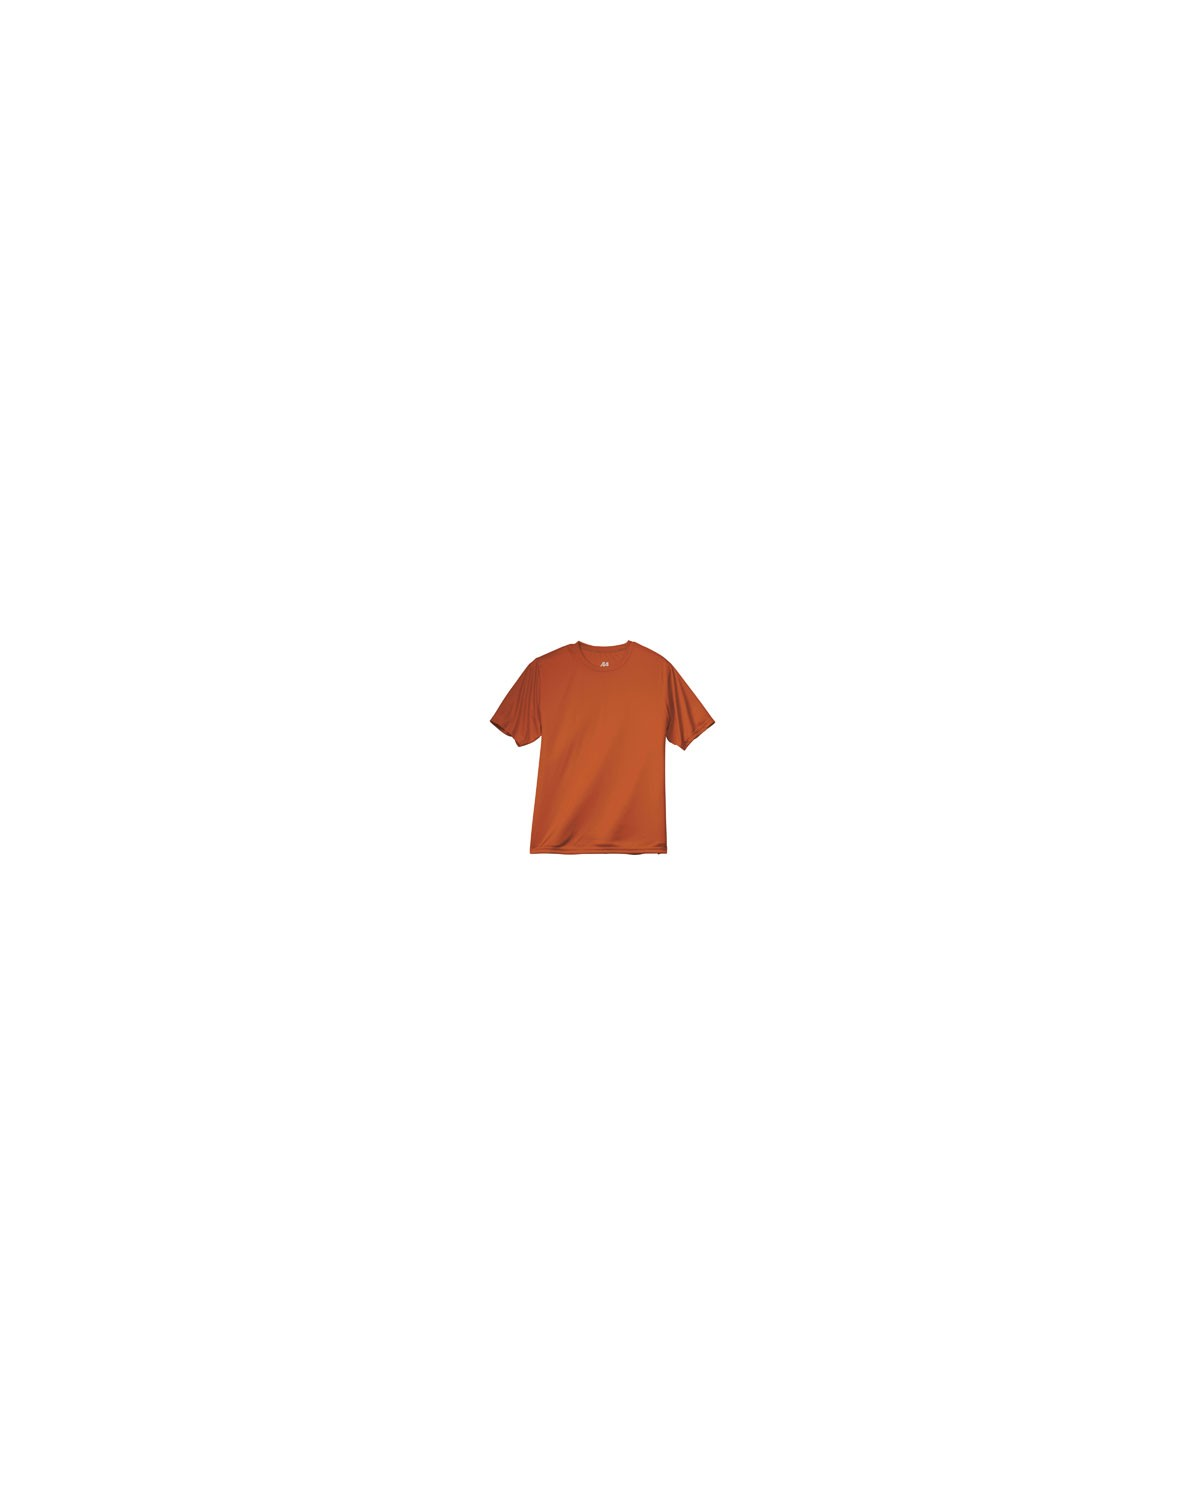 N3142 A4 Apparel TEXAS ORANGE